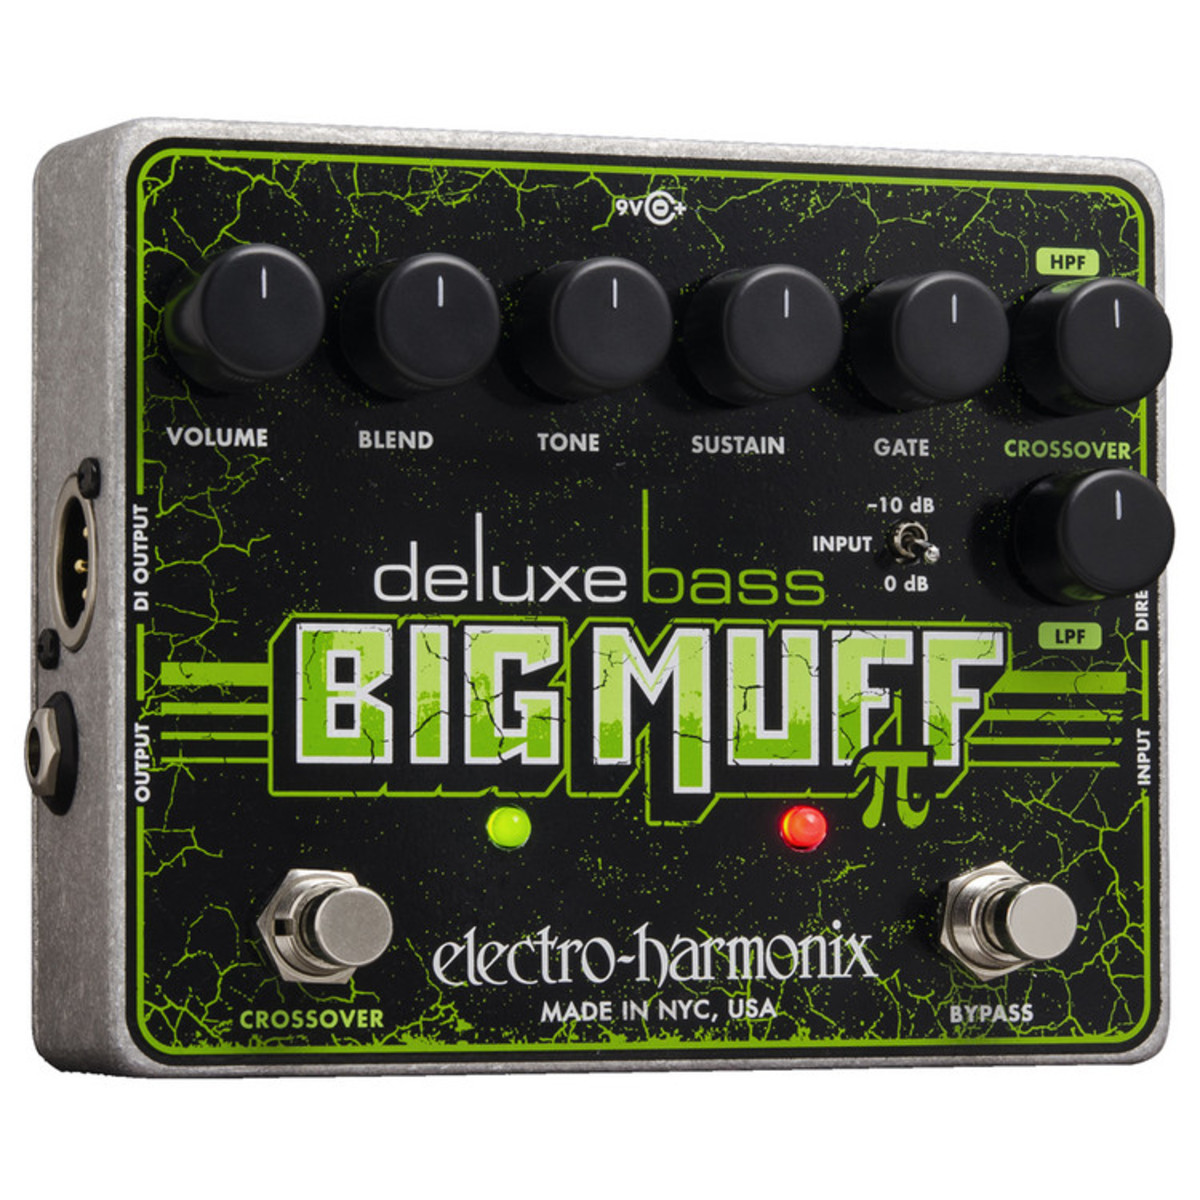 electro harmonix deluxe bass big muff pi effects pedal nearly new at. Black Bedroom Furniture Sets. Home Design Ideas